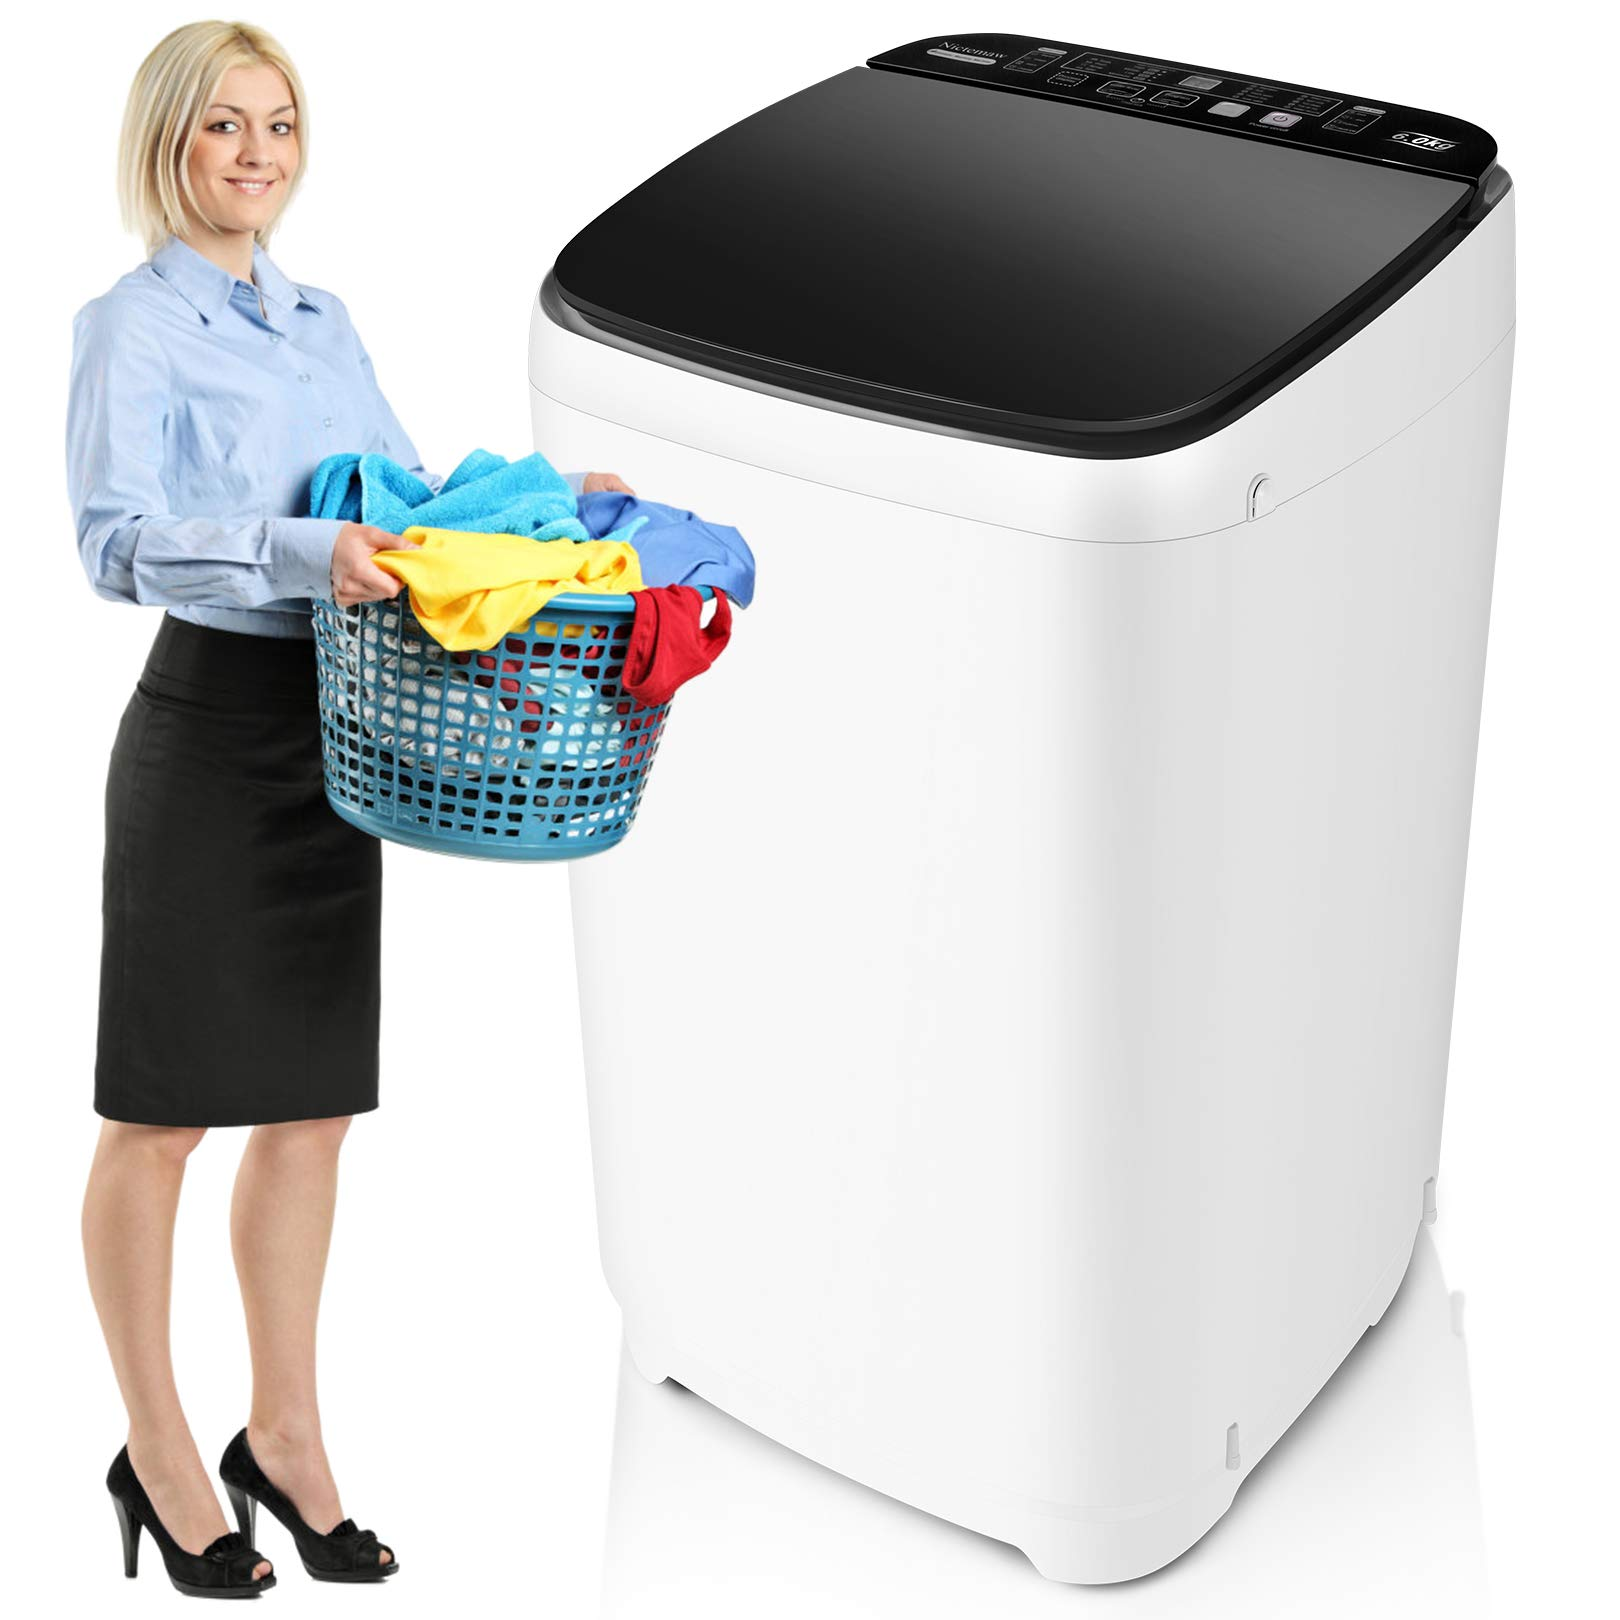 Full-Automatic Washer Machine Nictemaw Portable Washing Machine 1.48 Cu.ft/13.6Lbs Capacity Laundry Washer Spin Dryer, 10 programs Selections with LED Display Ideal for Home/Apartments/Dorms/RV